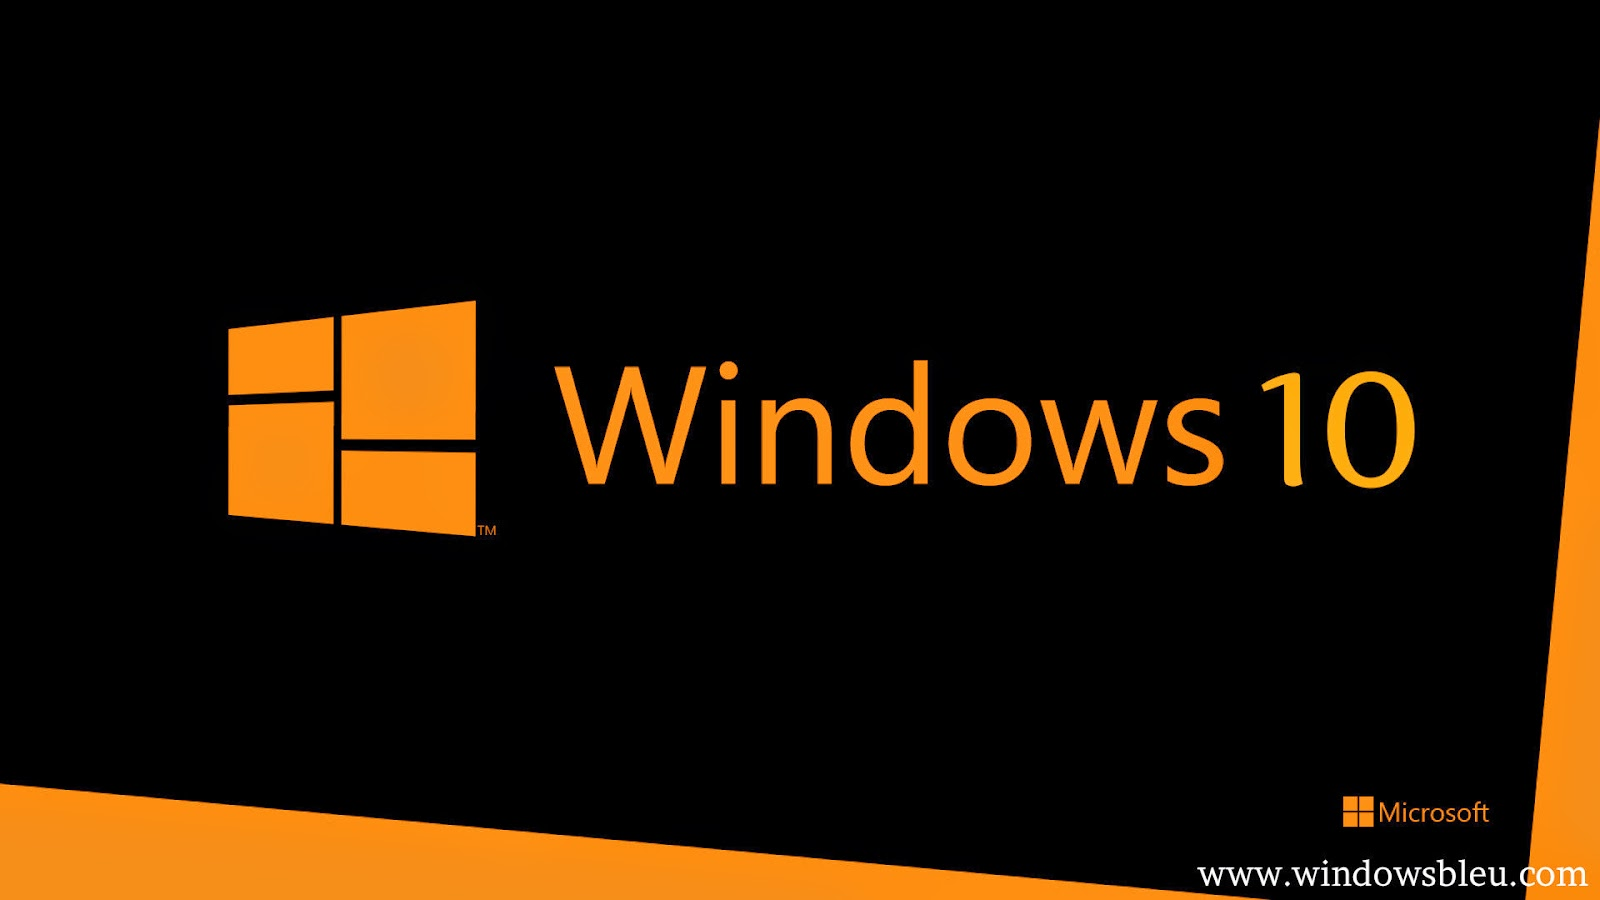 Windows 10 Logo Wallpaper and Theme Pack All for Windows 10 1600x900